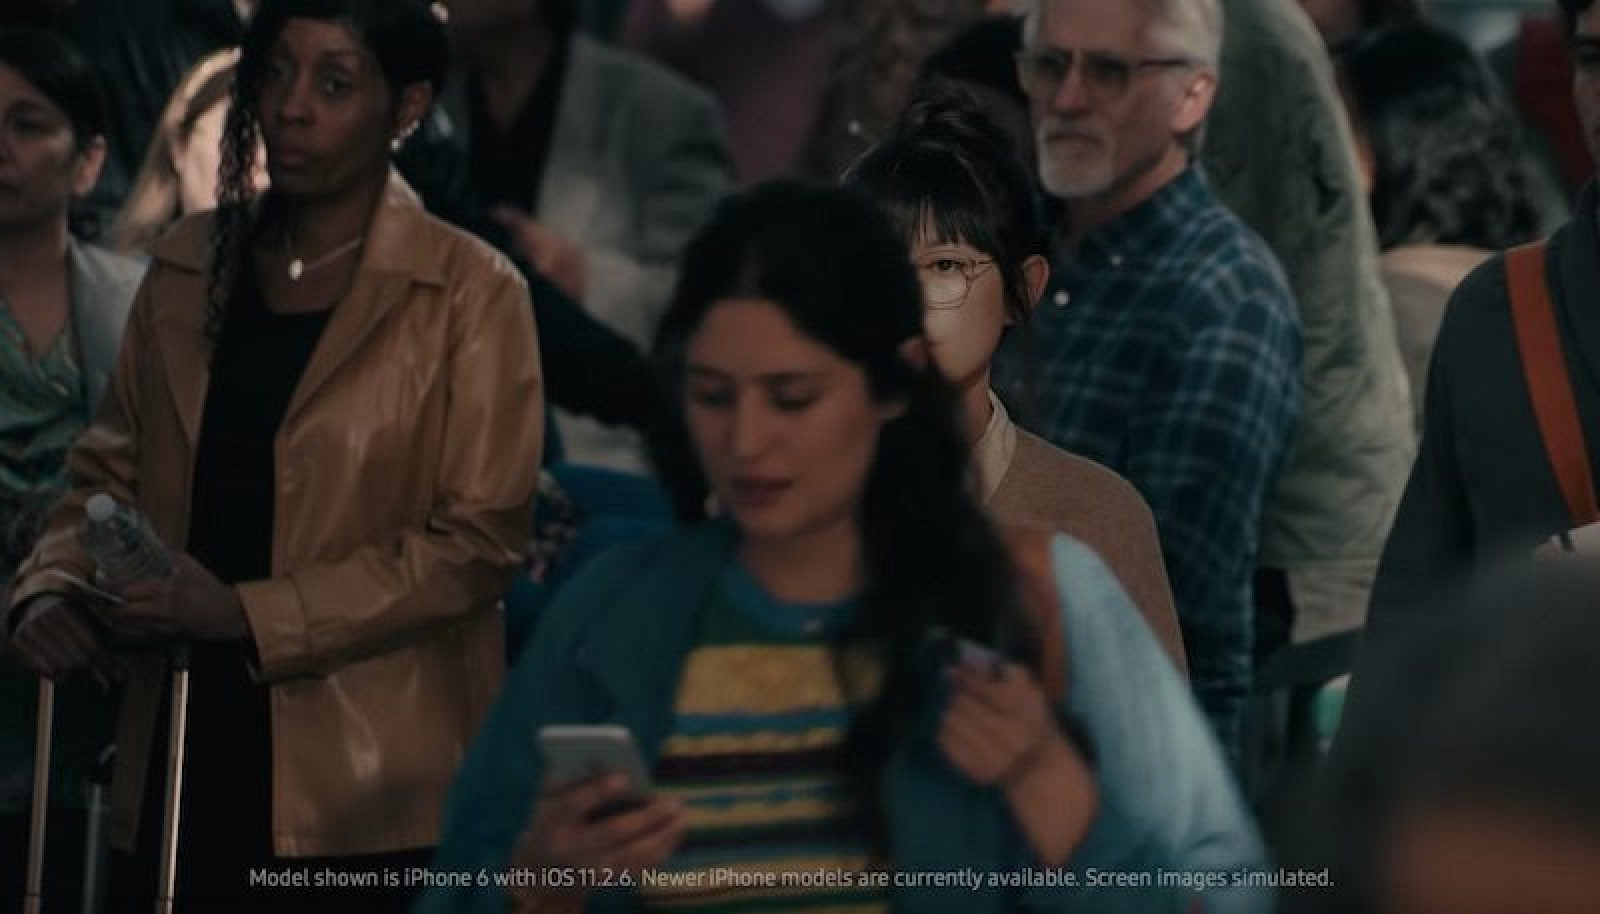 photo image Samsung Compares Galaxy S9 to Very Slow iPhone 6 in Frivolous Ad